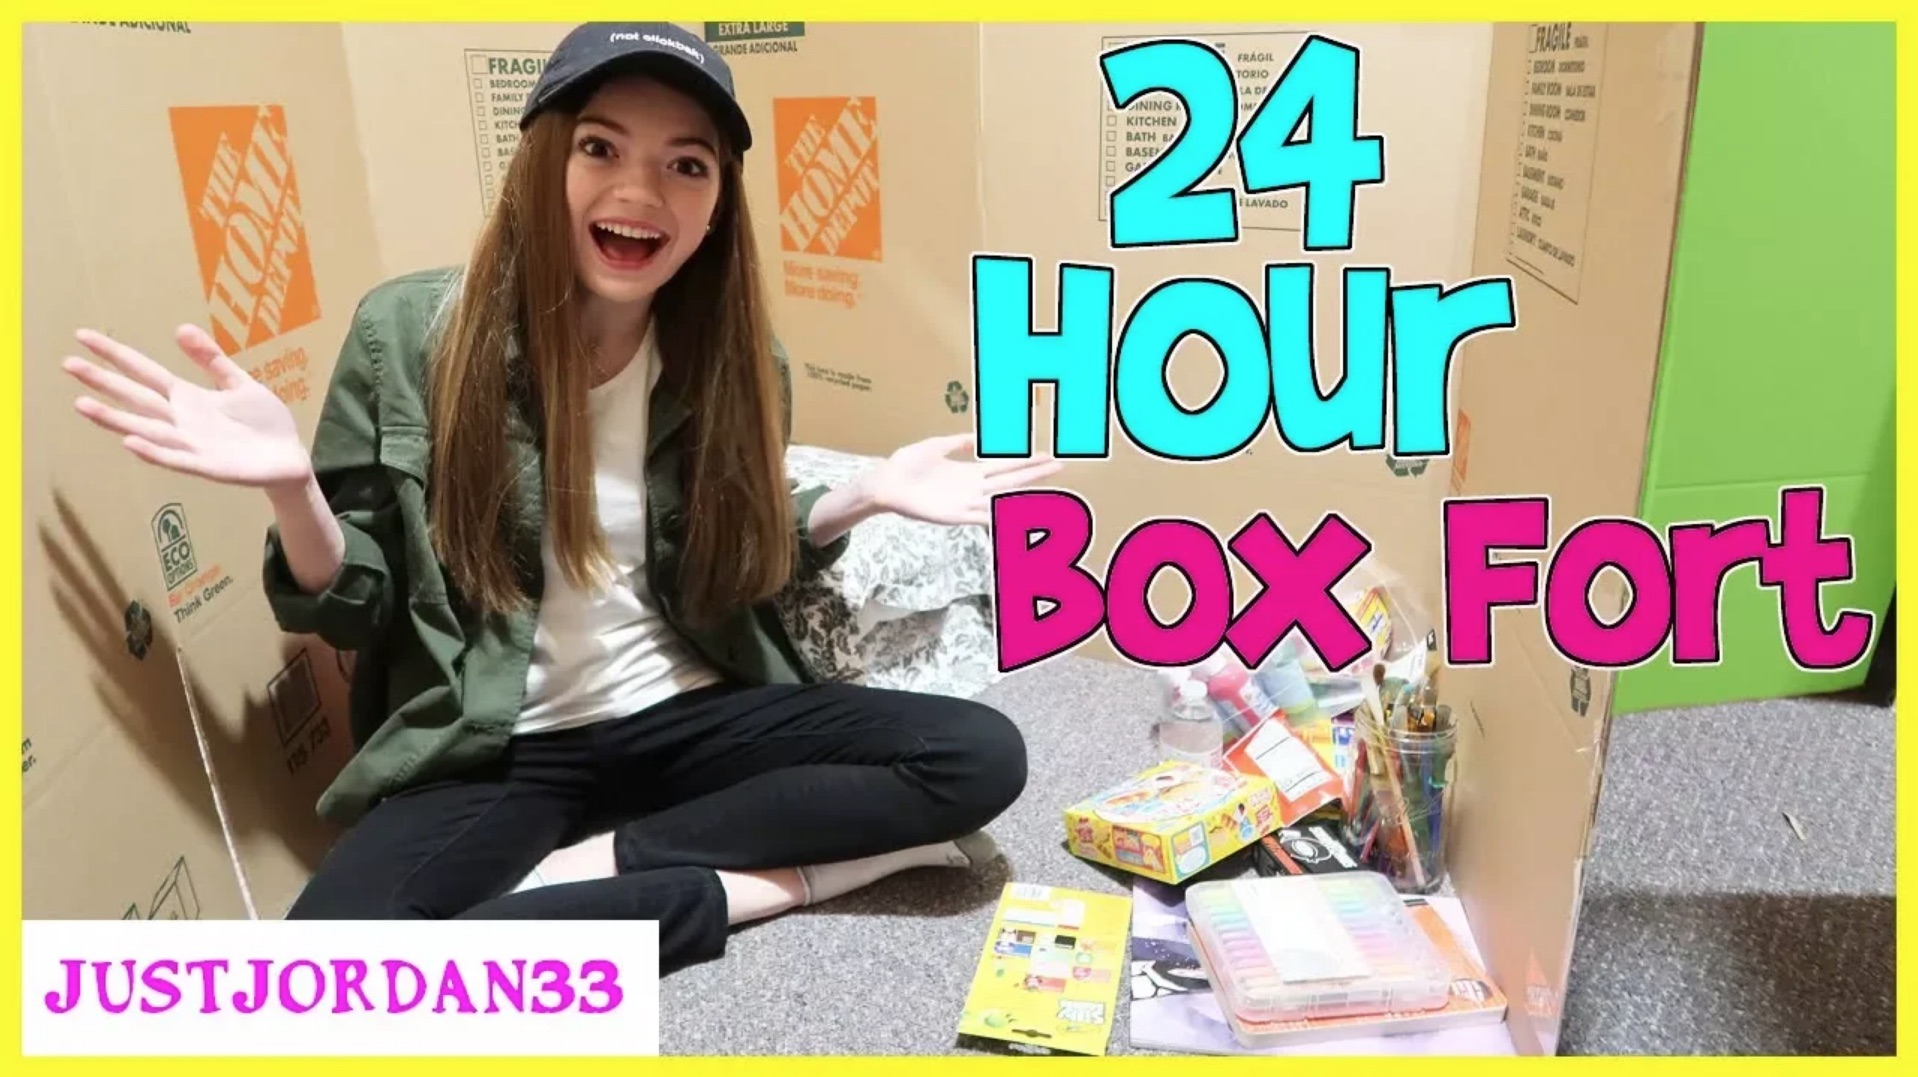 24 hour box fort justjordan33